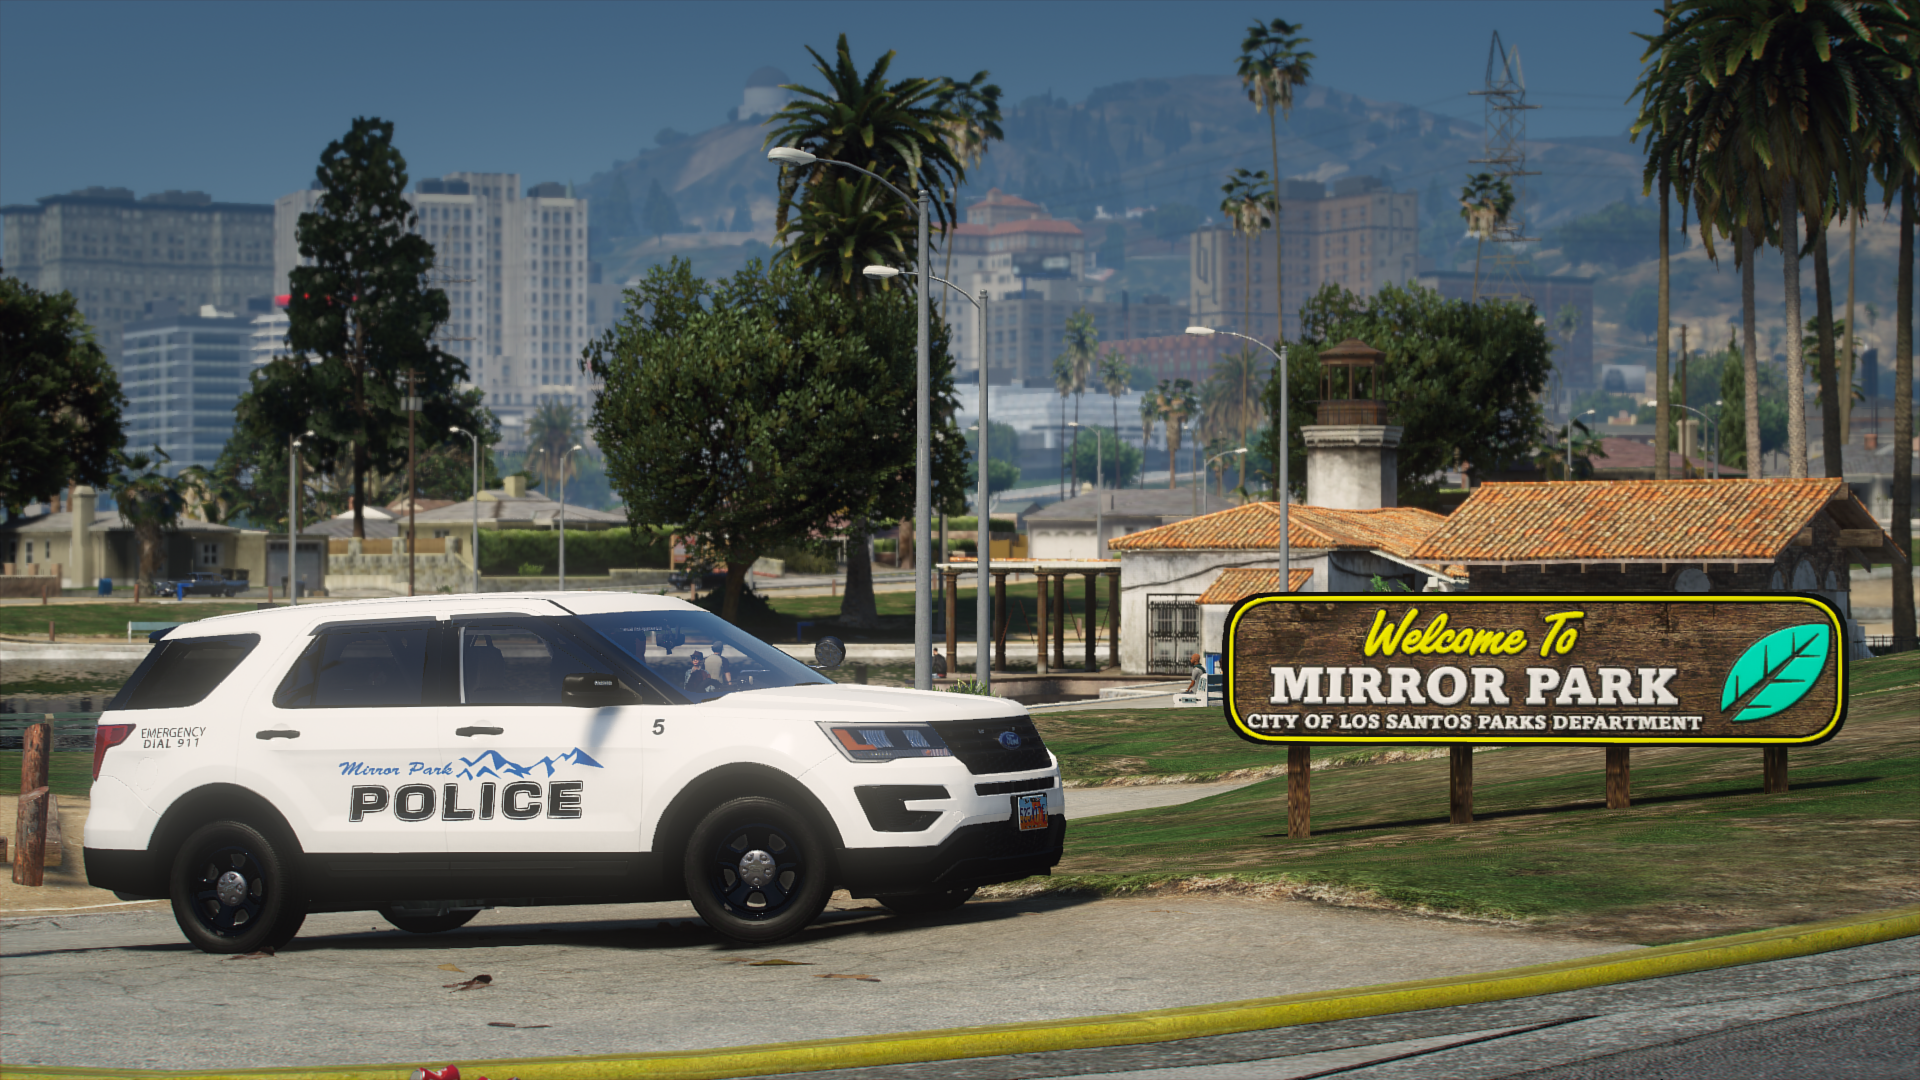 Welcome to Mirror Park